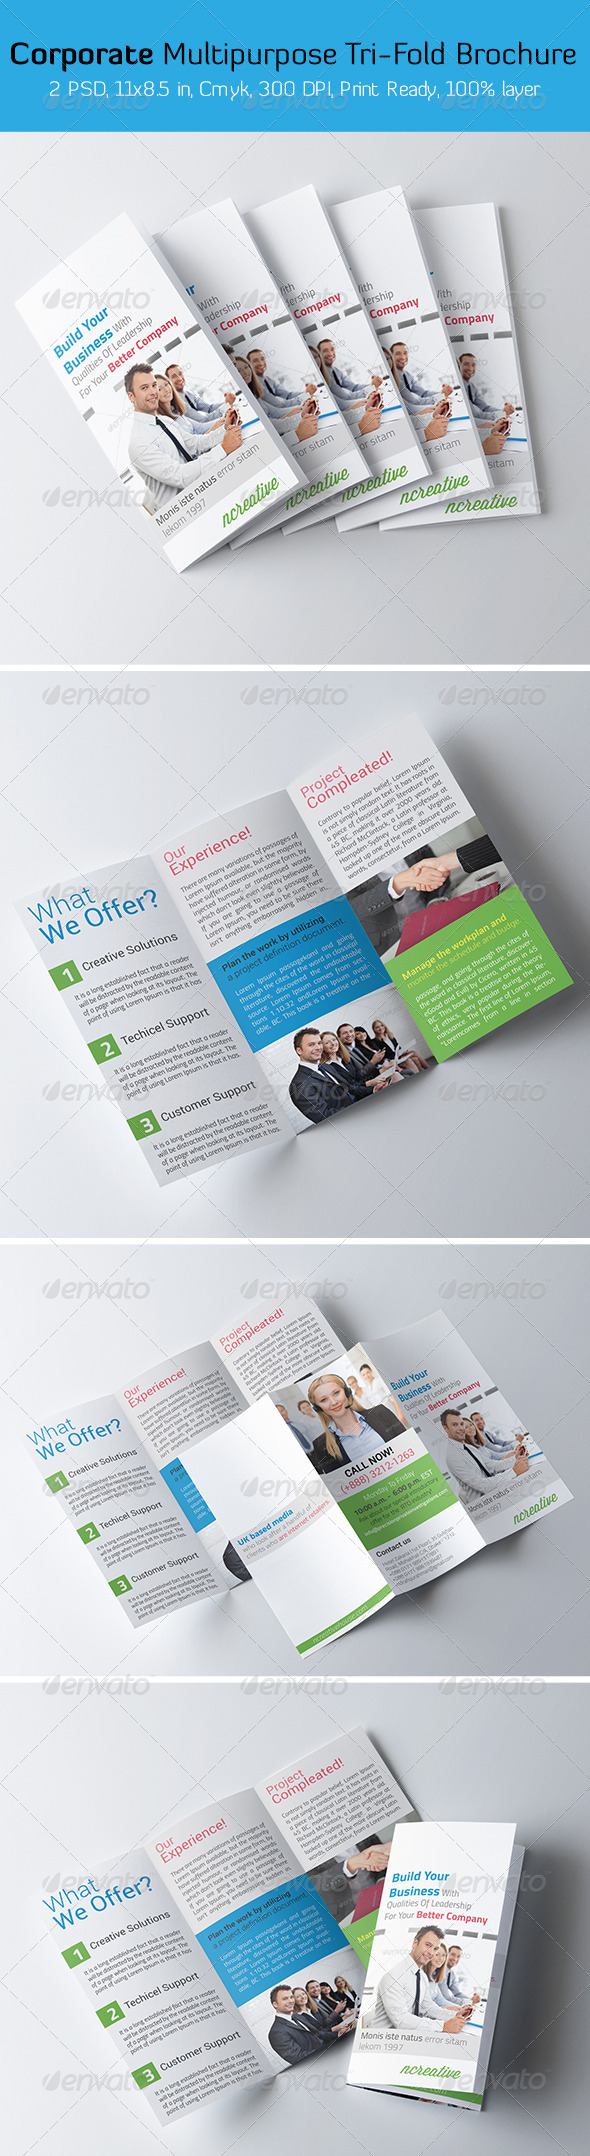 Corporate Multipurpose Tri-fold Brochure  - Corporate Brochures